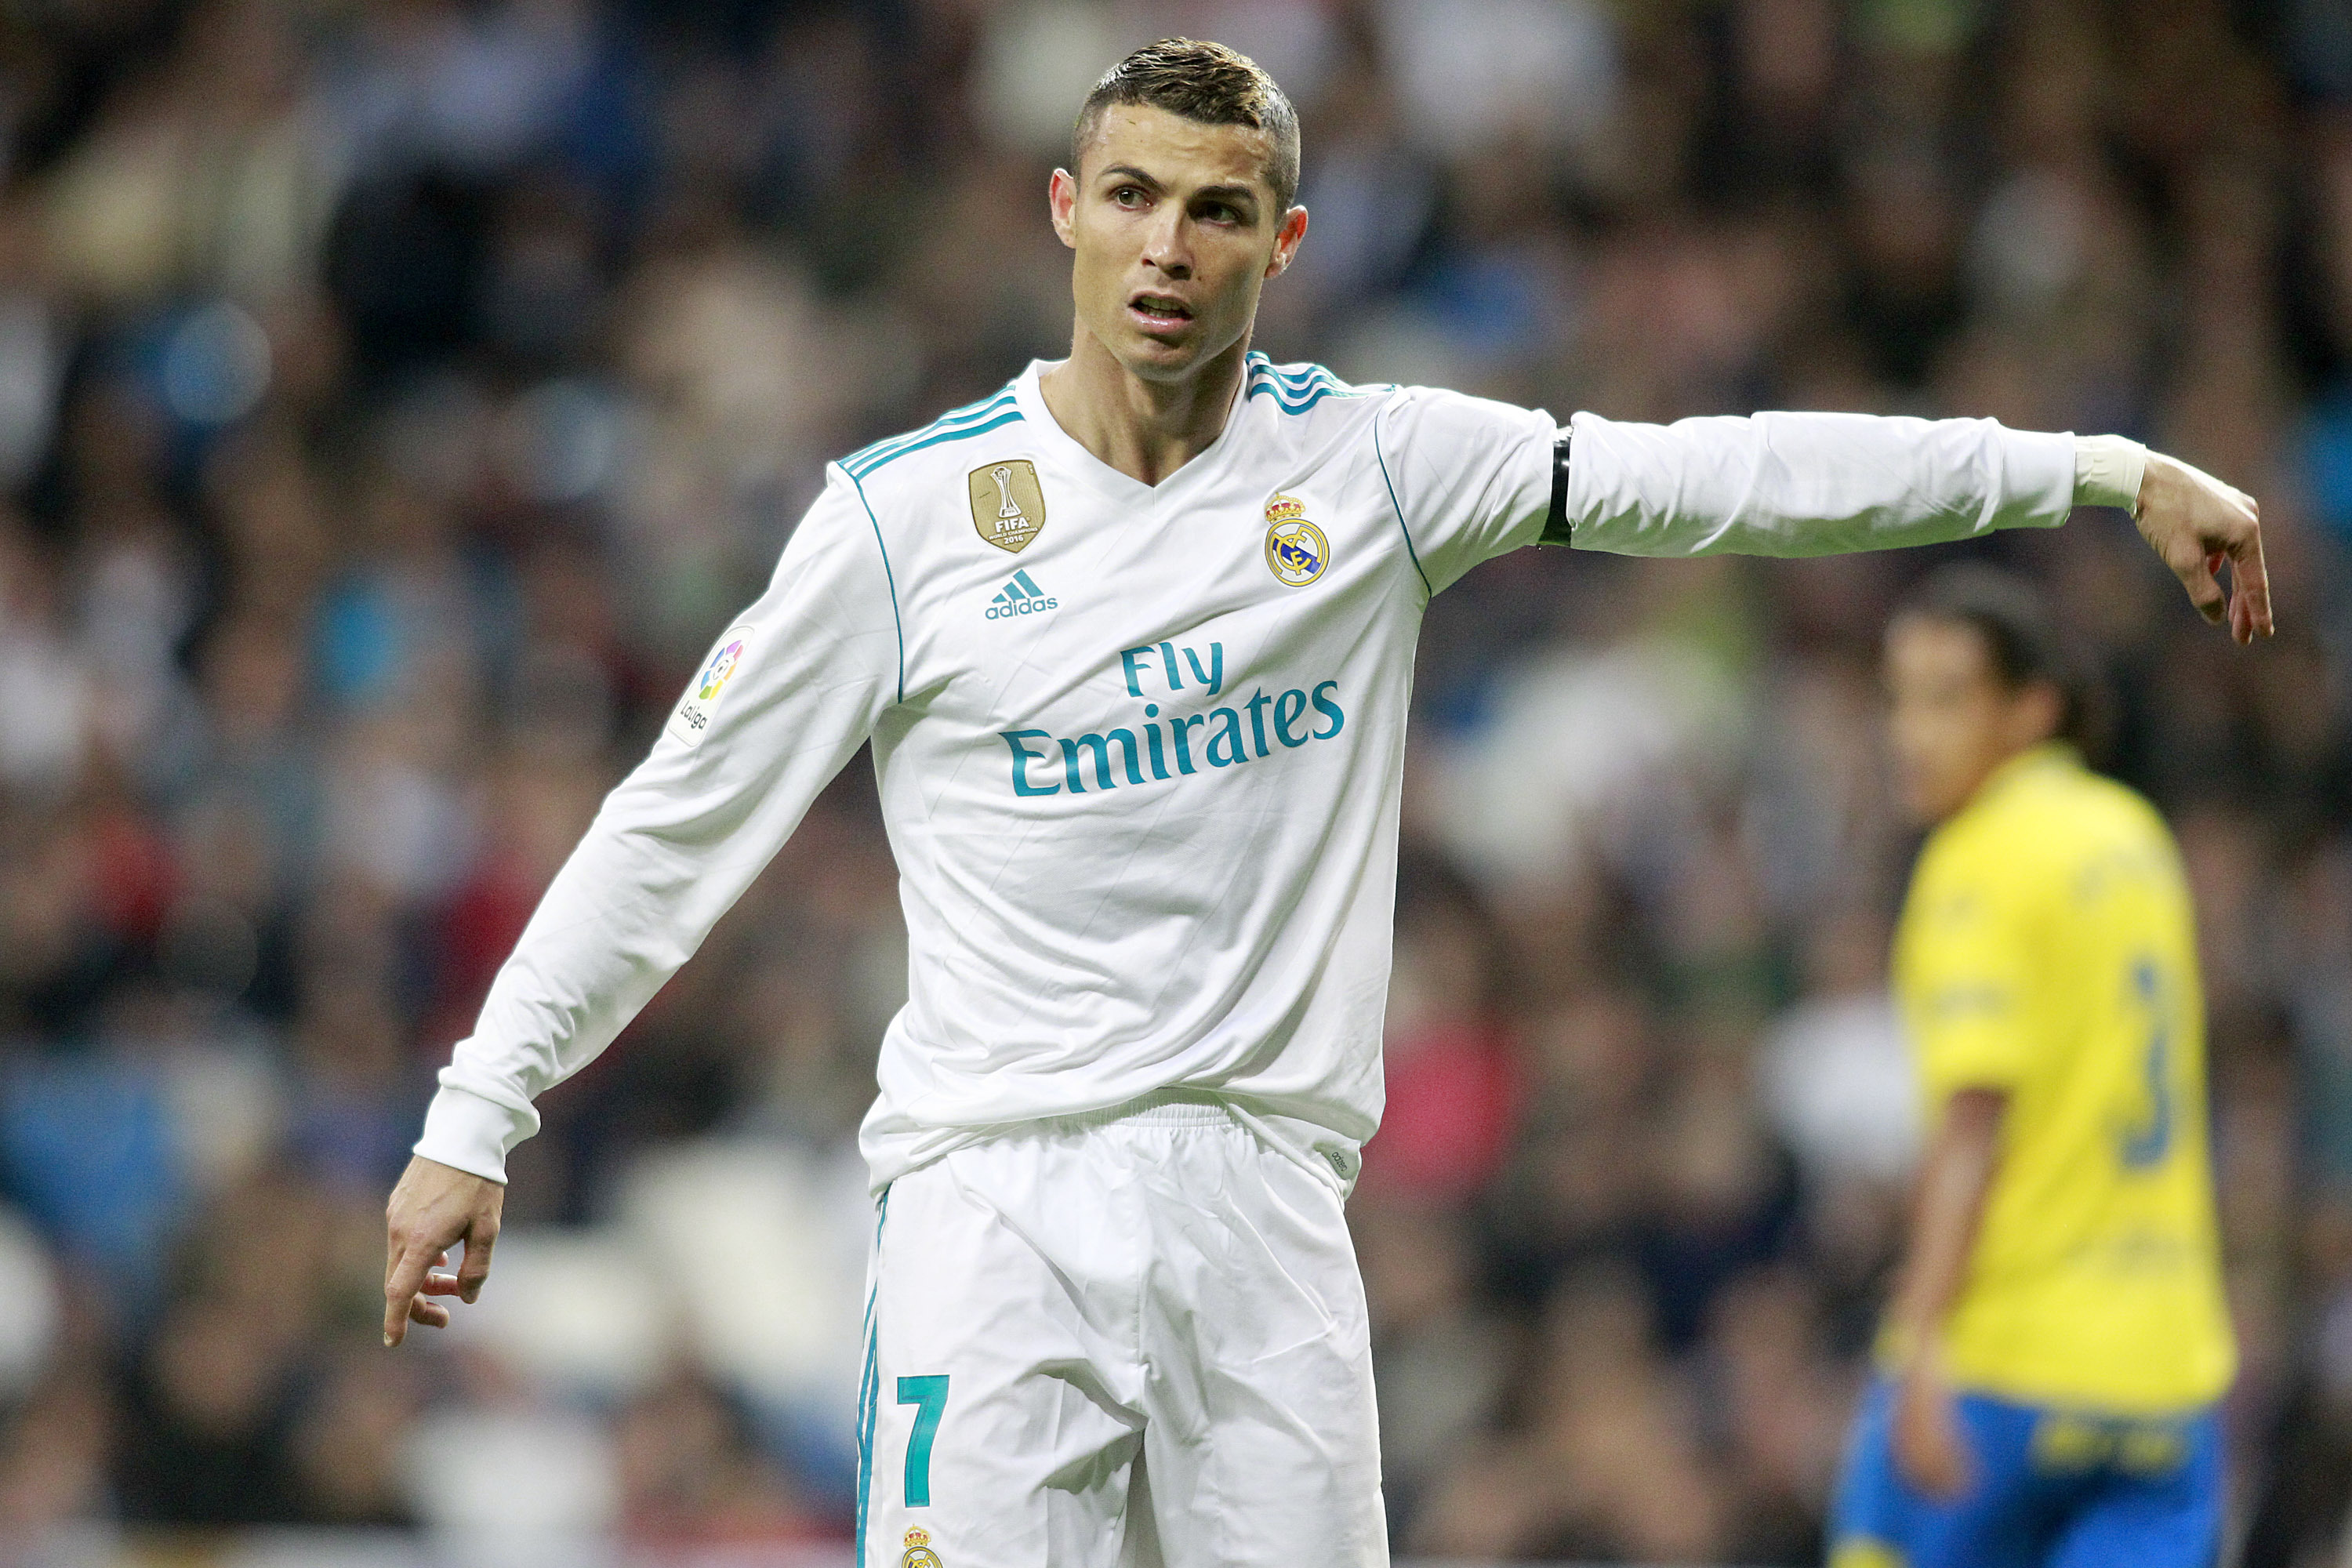 Ronaldo reject new Real Madrid contract, wants exist